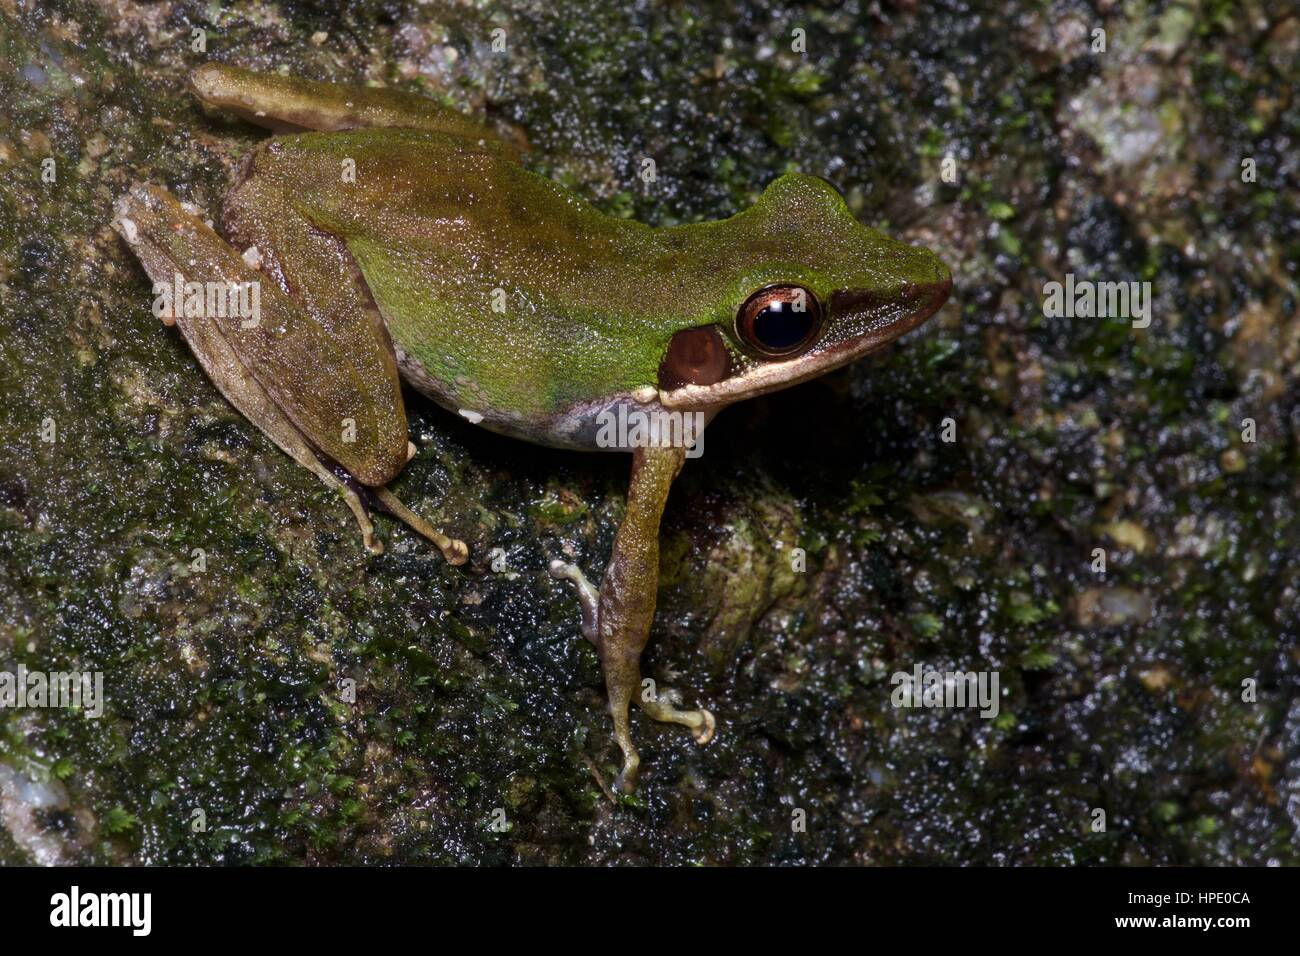 A White-lipped Frog (Chalcorana labialis) on a leaf at night in the rainforest in Ulu Semenyih, Selangor, Malaysia - Stock Image